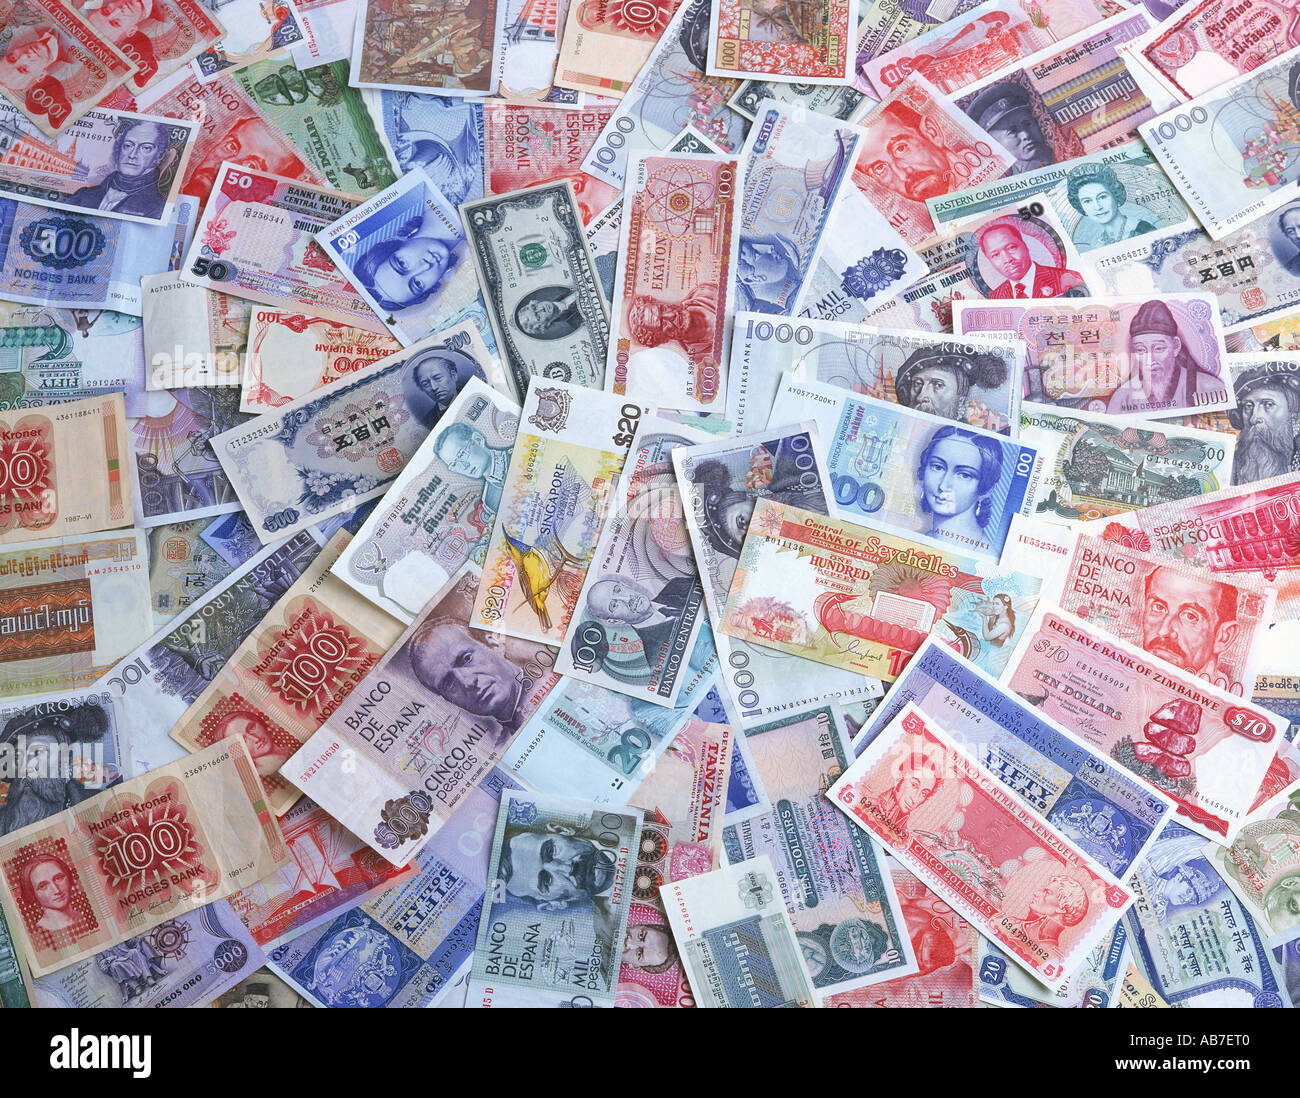 Collection of banknotes from variety of countries - Stock Image